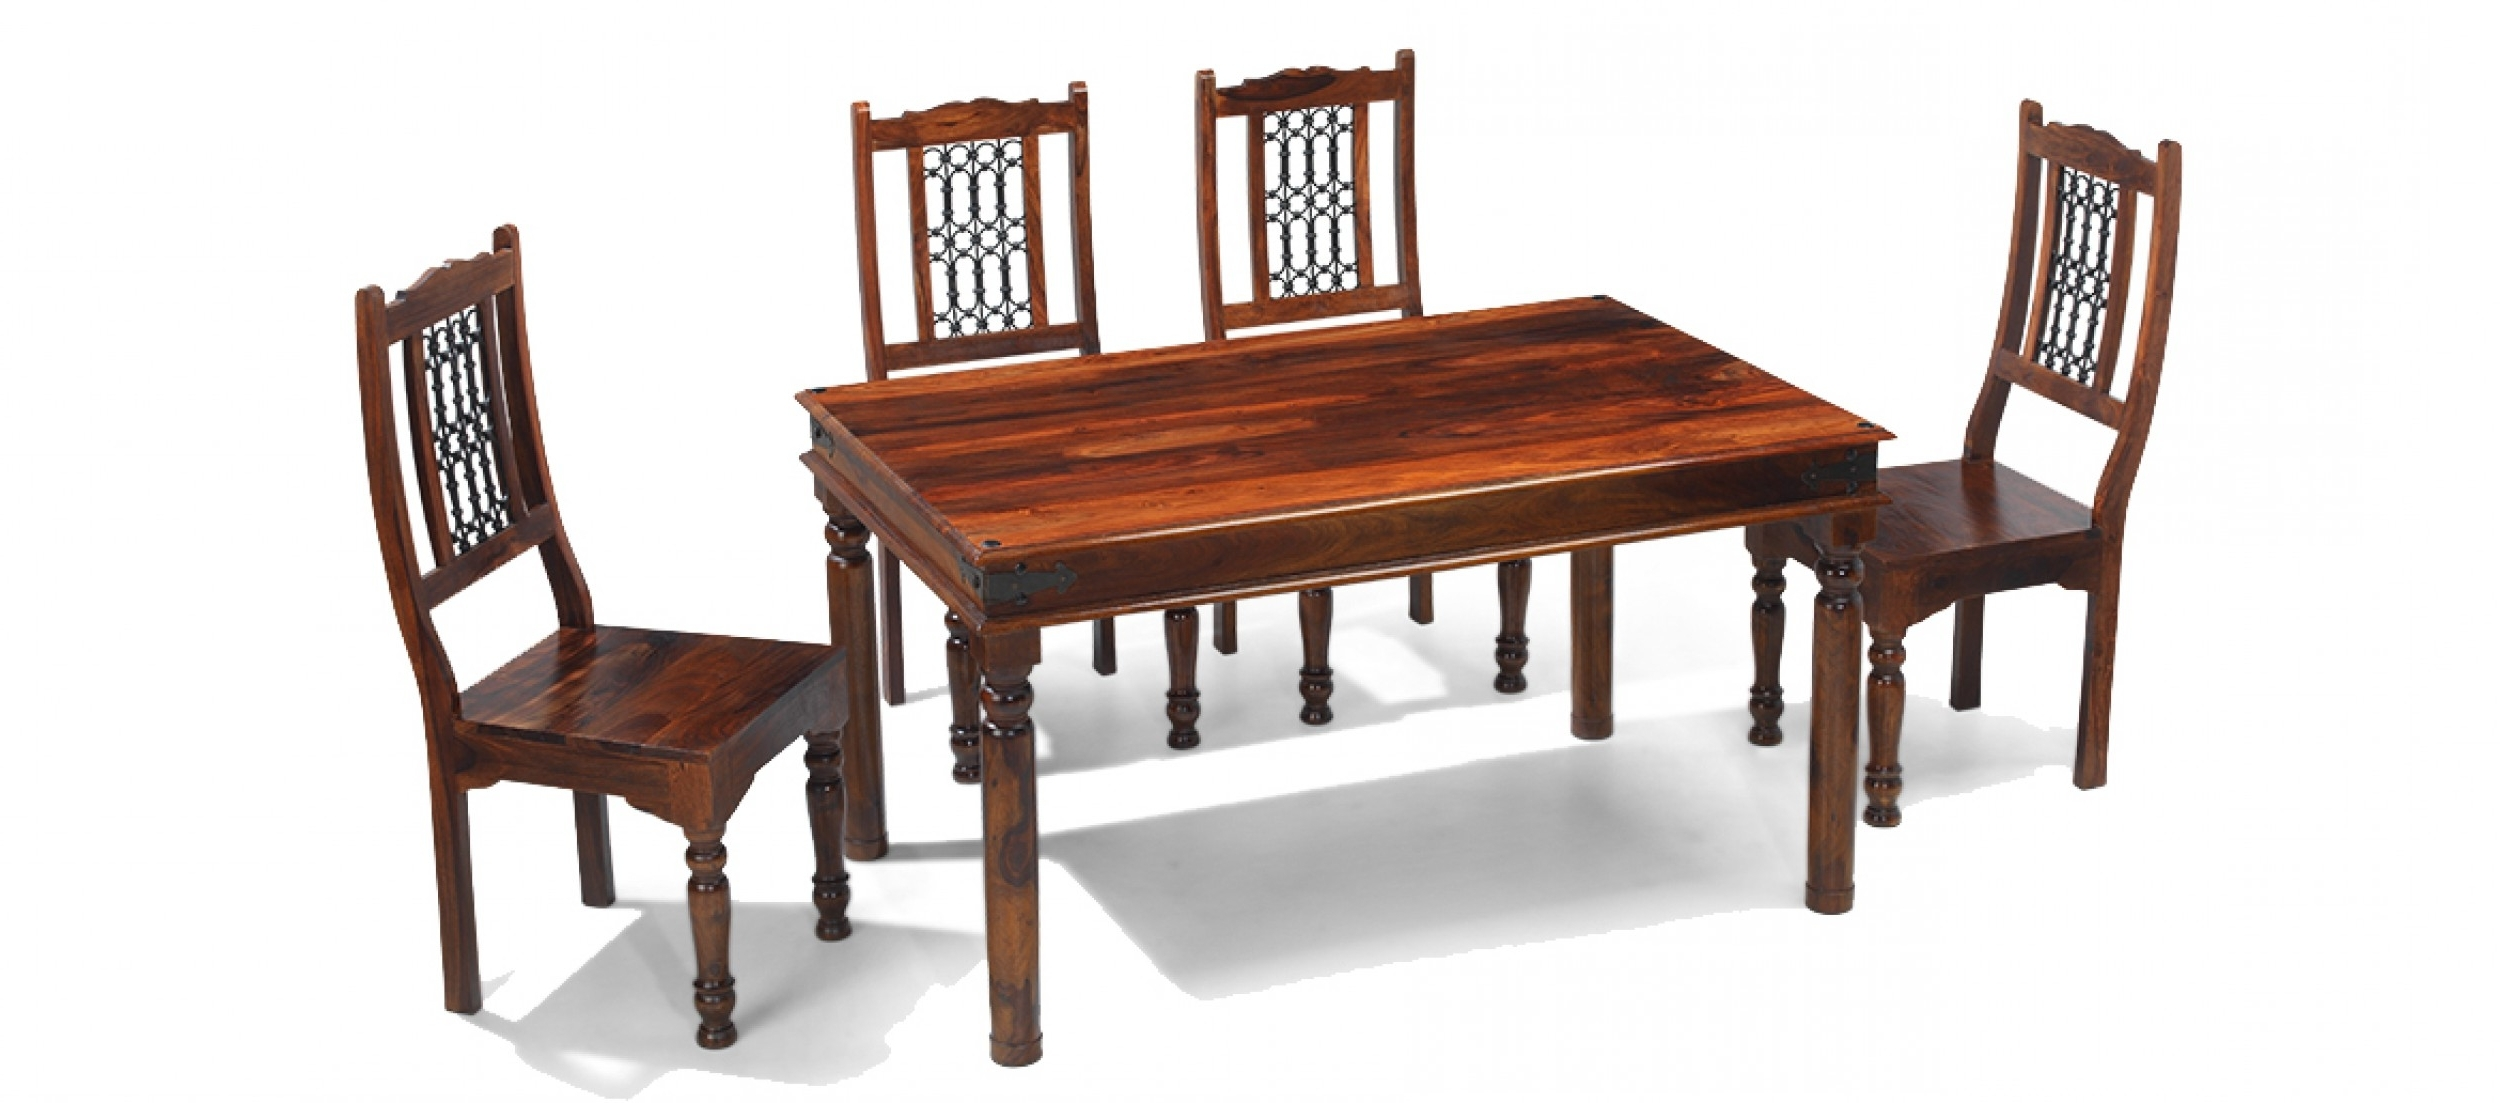 Quercus Living For Popular Sheesham Dining Tables And Chairs (View 17 of 25)